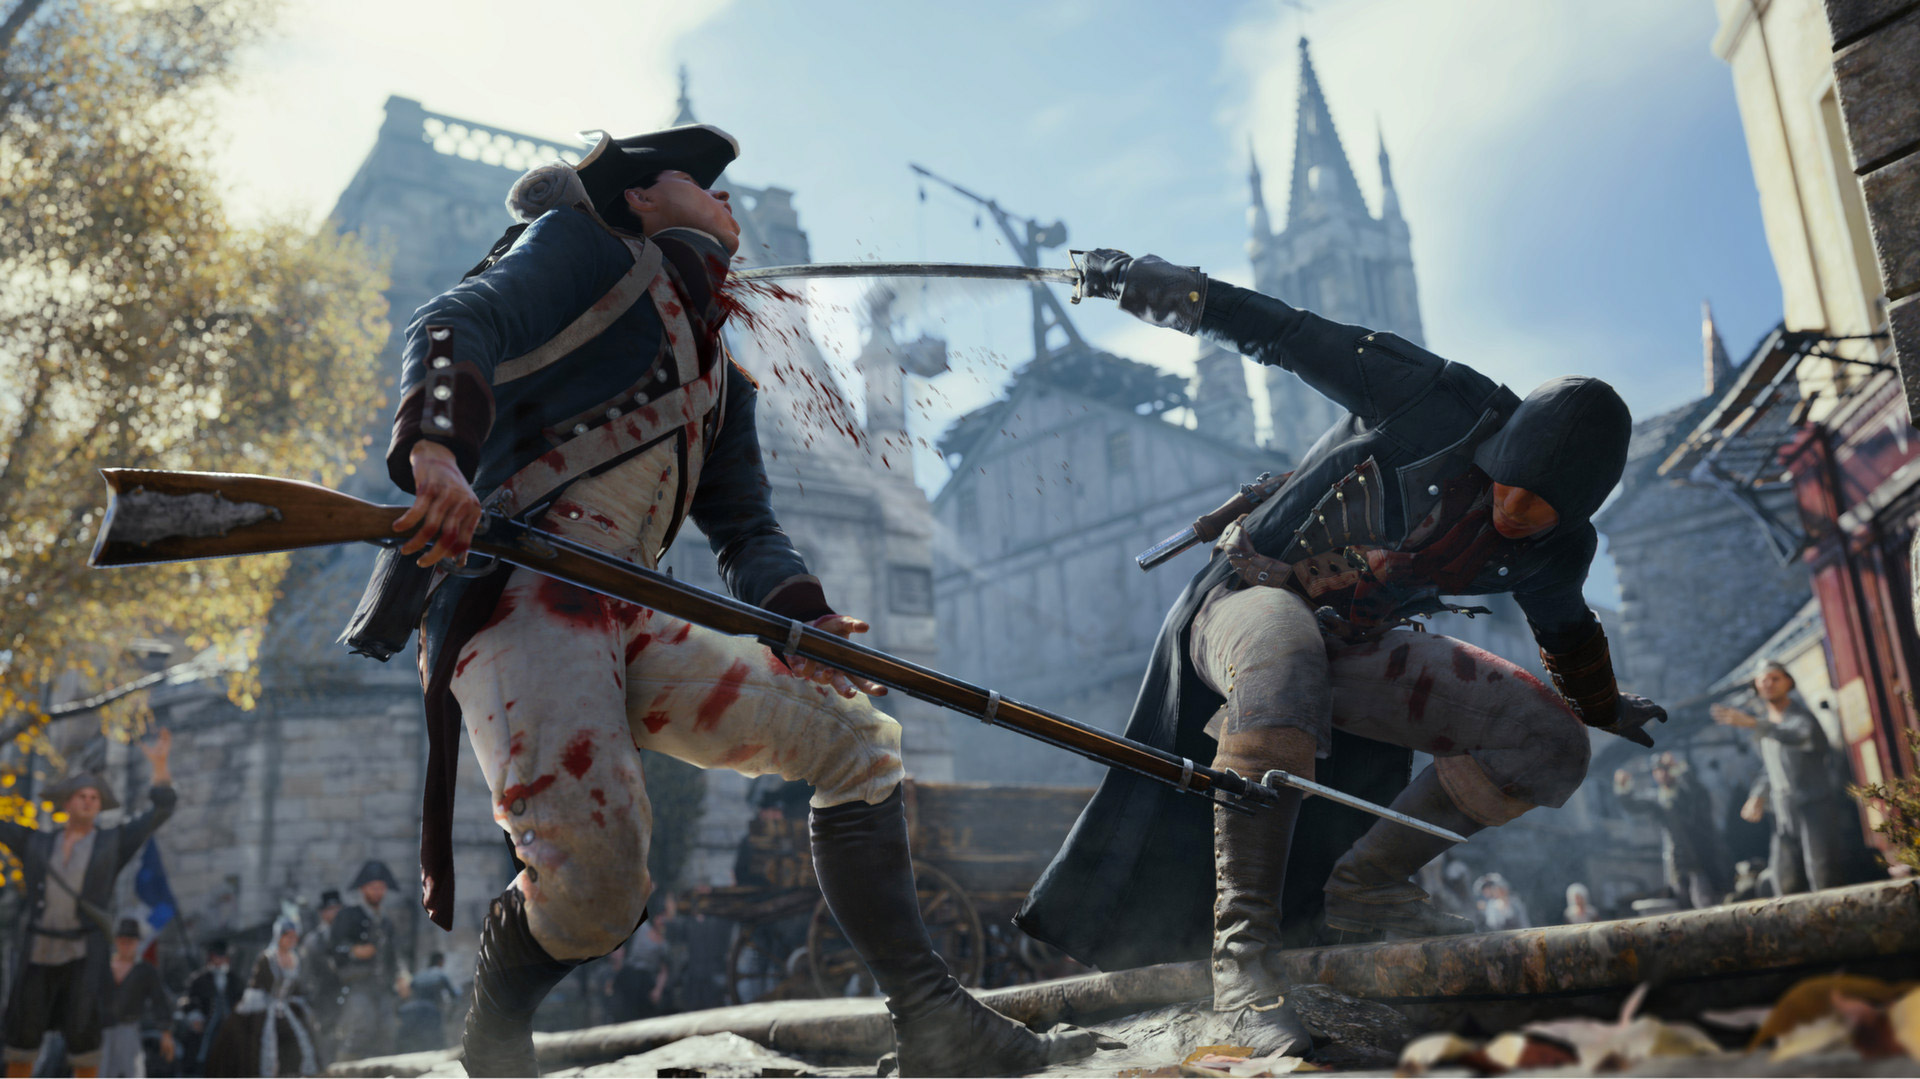 Claim a free game and give up the right to sue over Assassin's Creed Unity